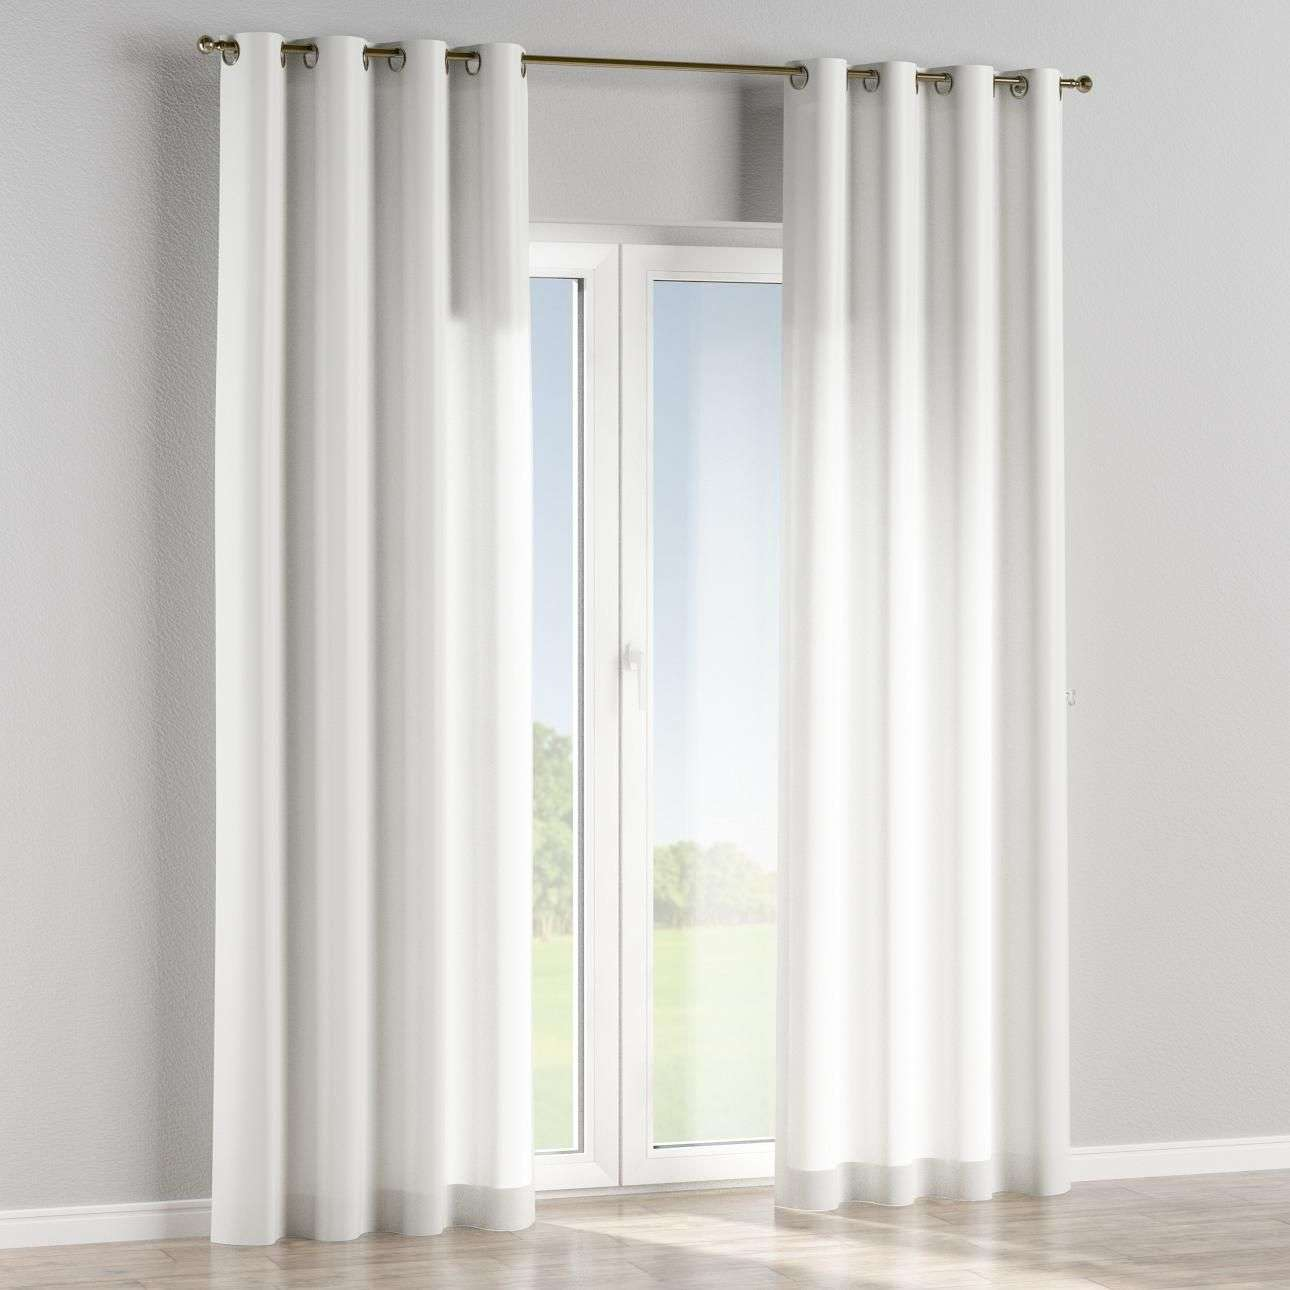 Eyelet curtains in collection SALE, fabric: 103-98